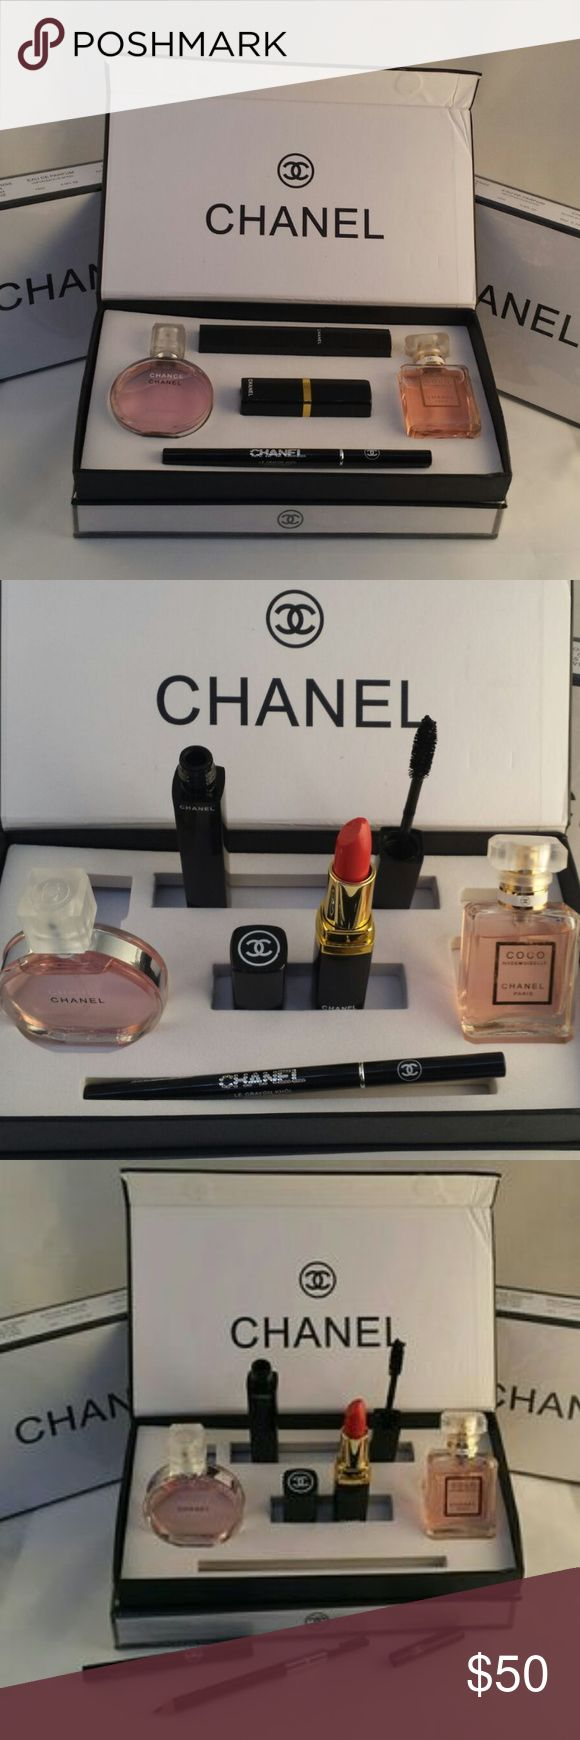 chanel 5 gift set. chanel gift set 5 pieces new t